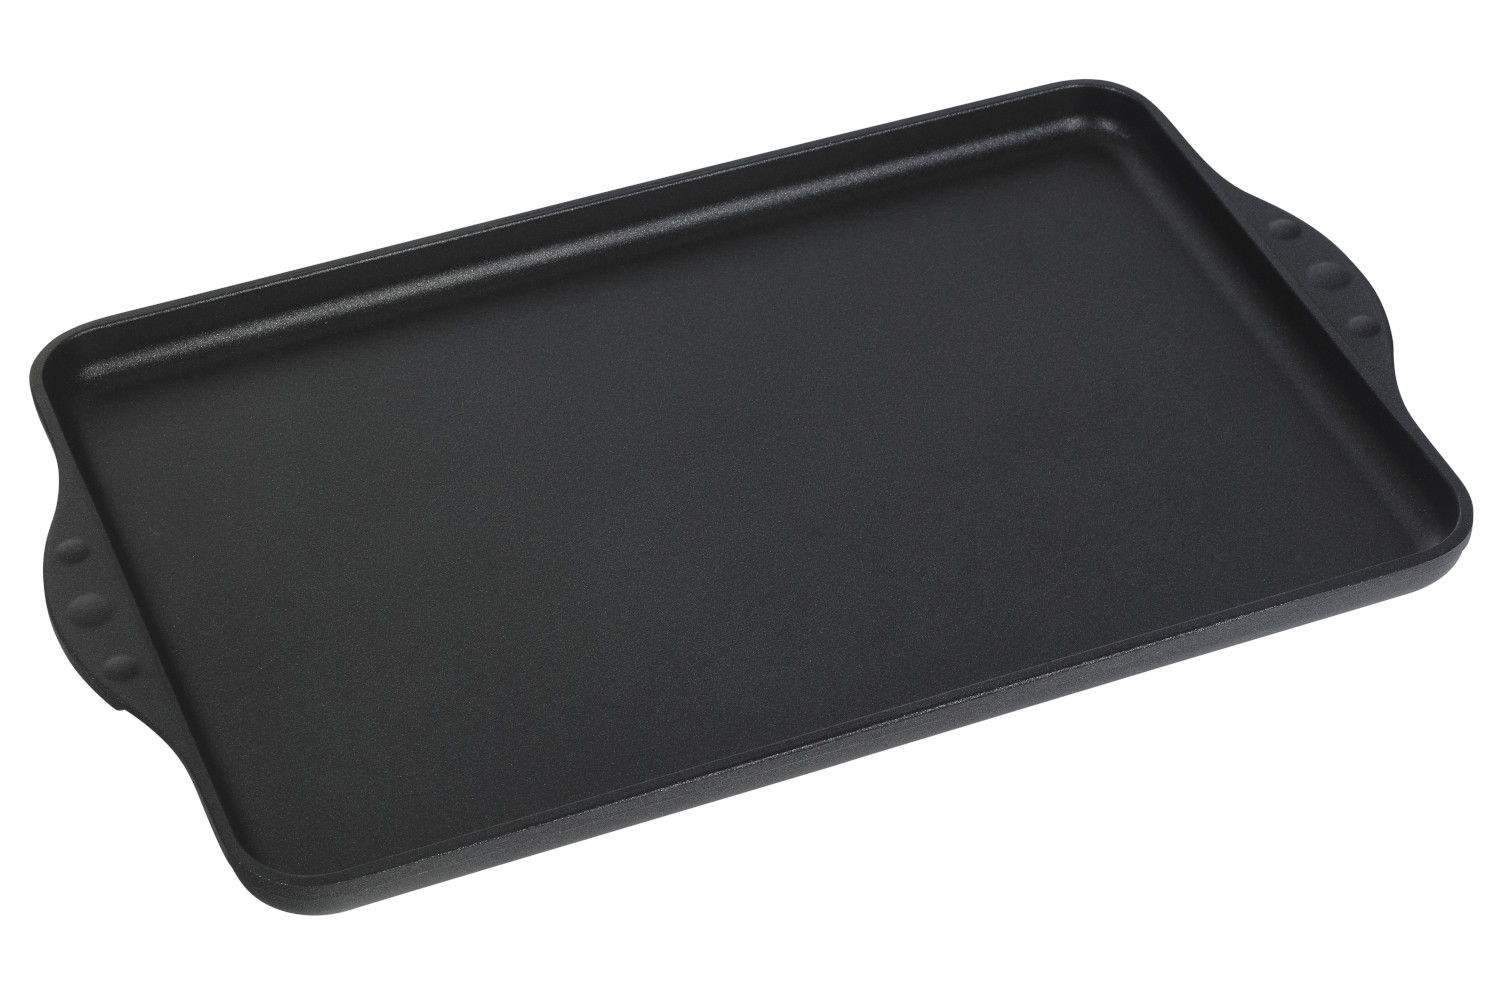 Swiss Diamond Classic+ XD Nonstick 17 x 11 inch Double Burner Griddle